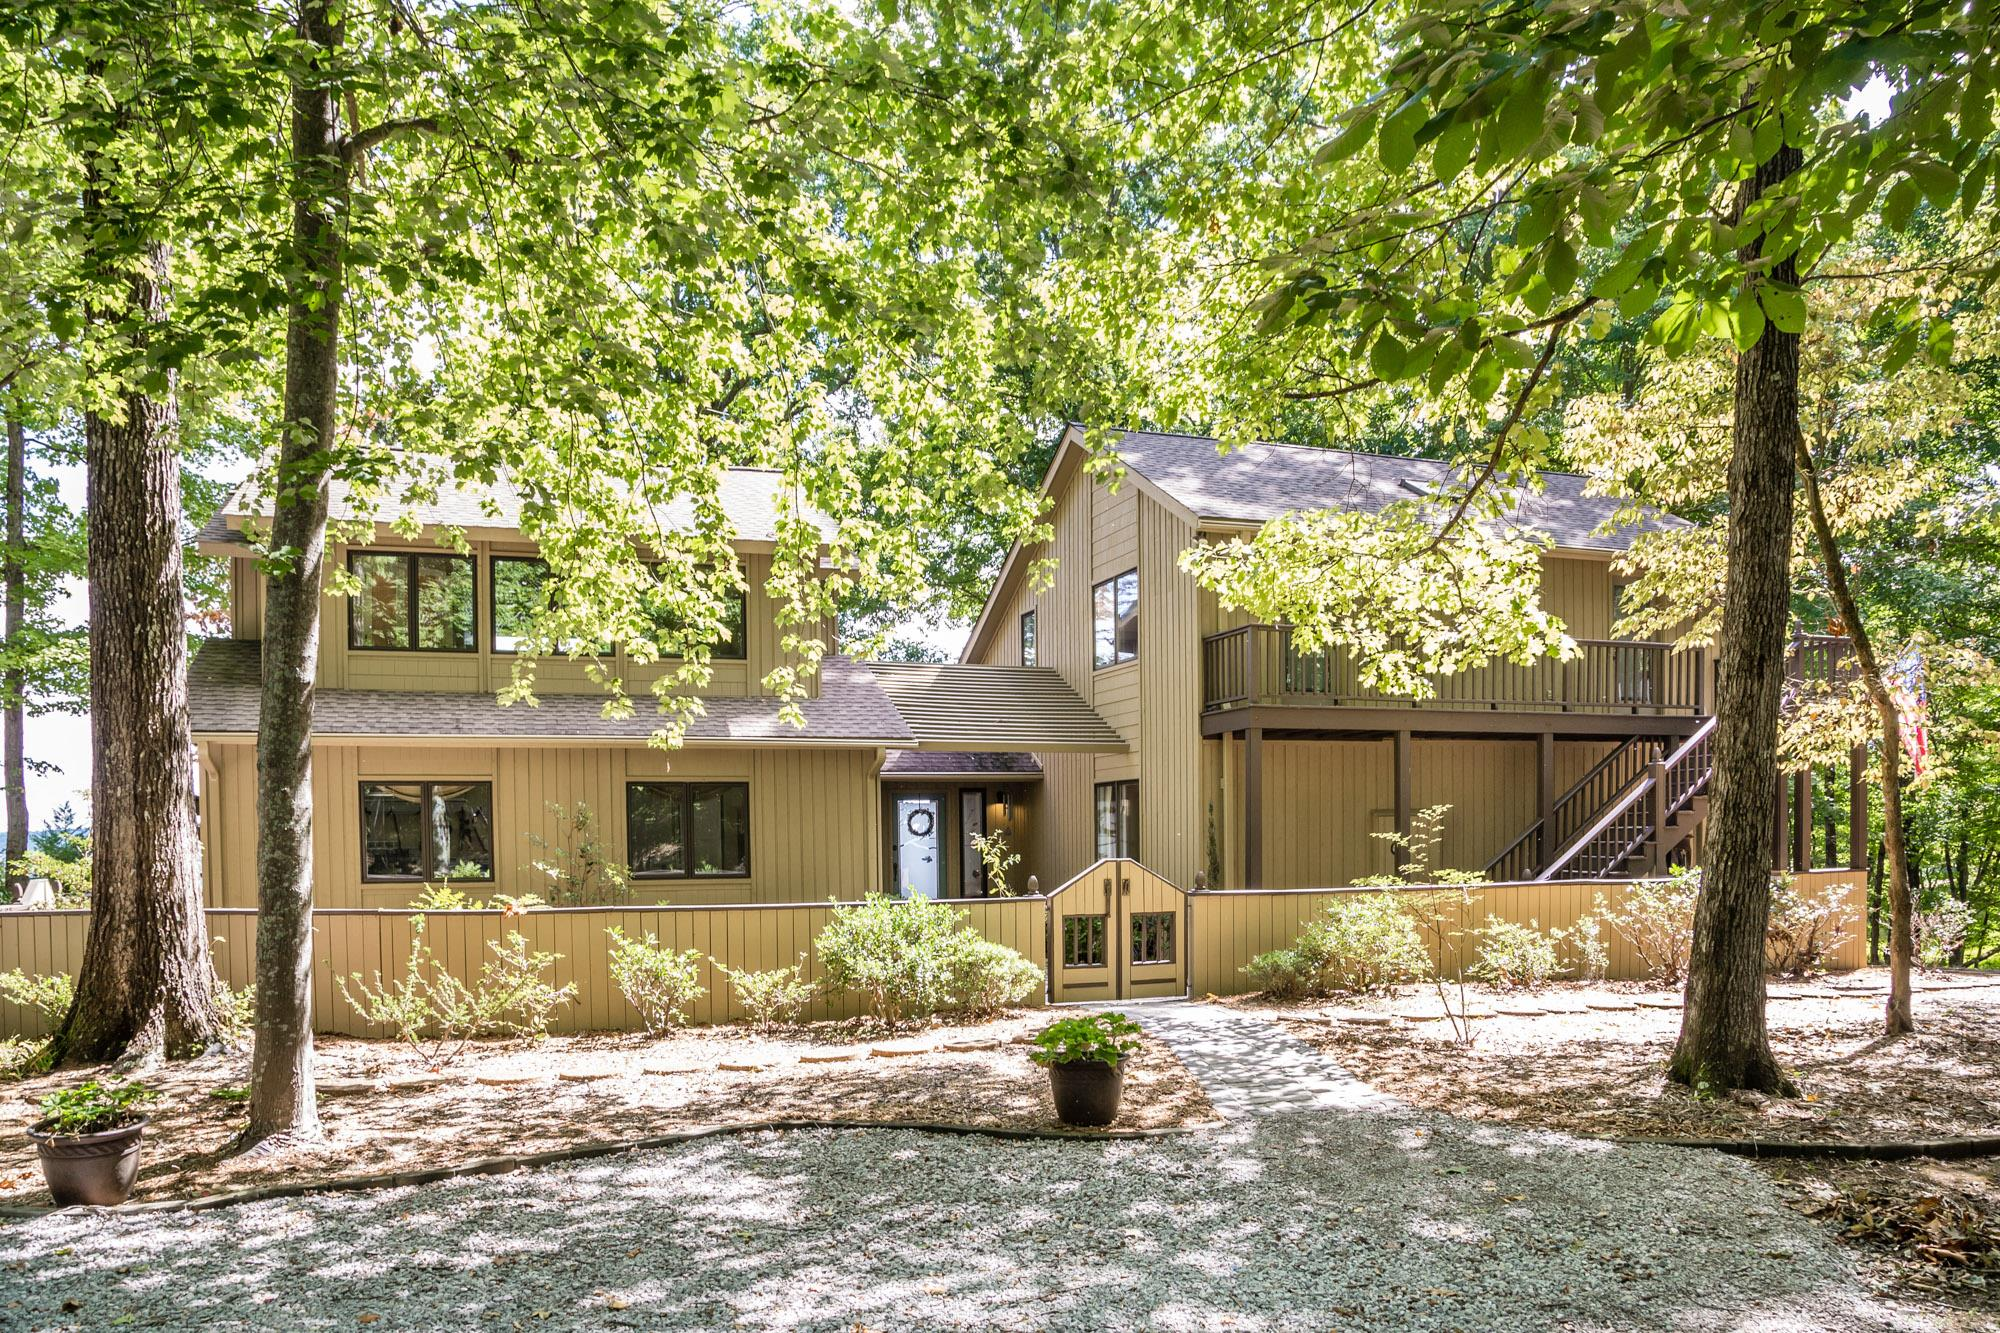 3177 Sherwood Rd, Sewanee, TN 37375 - Sewanee, TN real estate listing